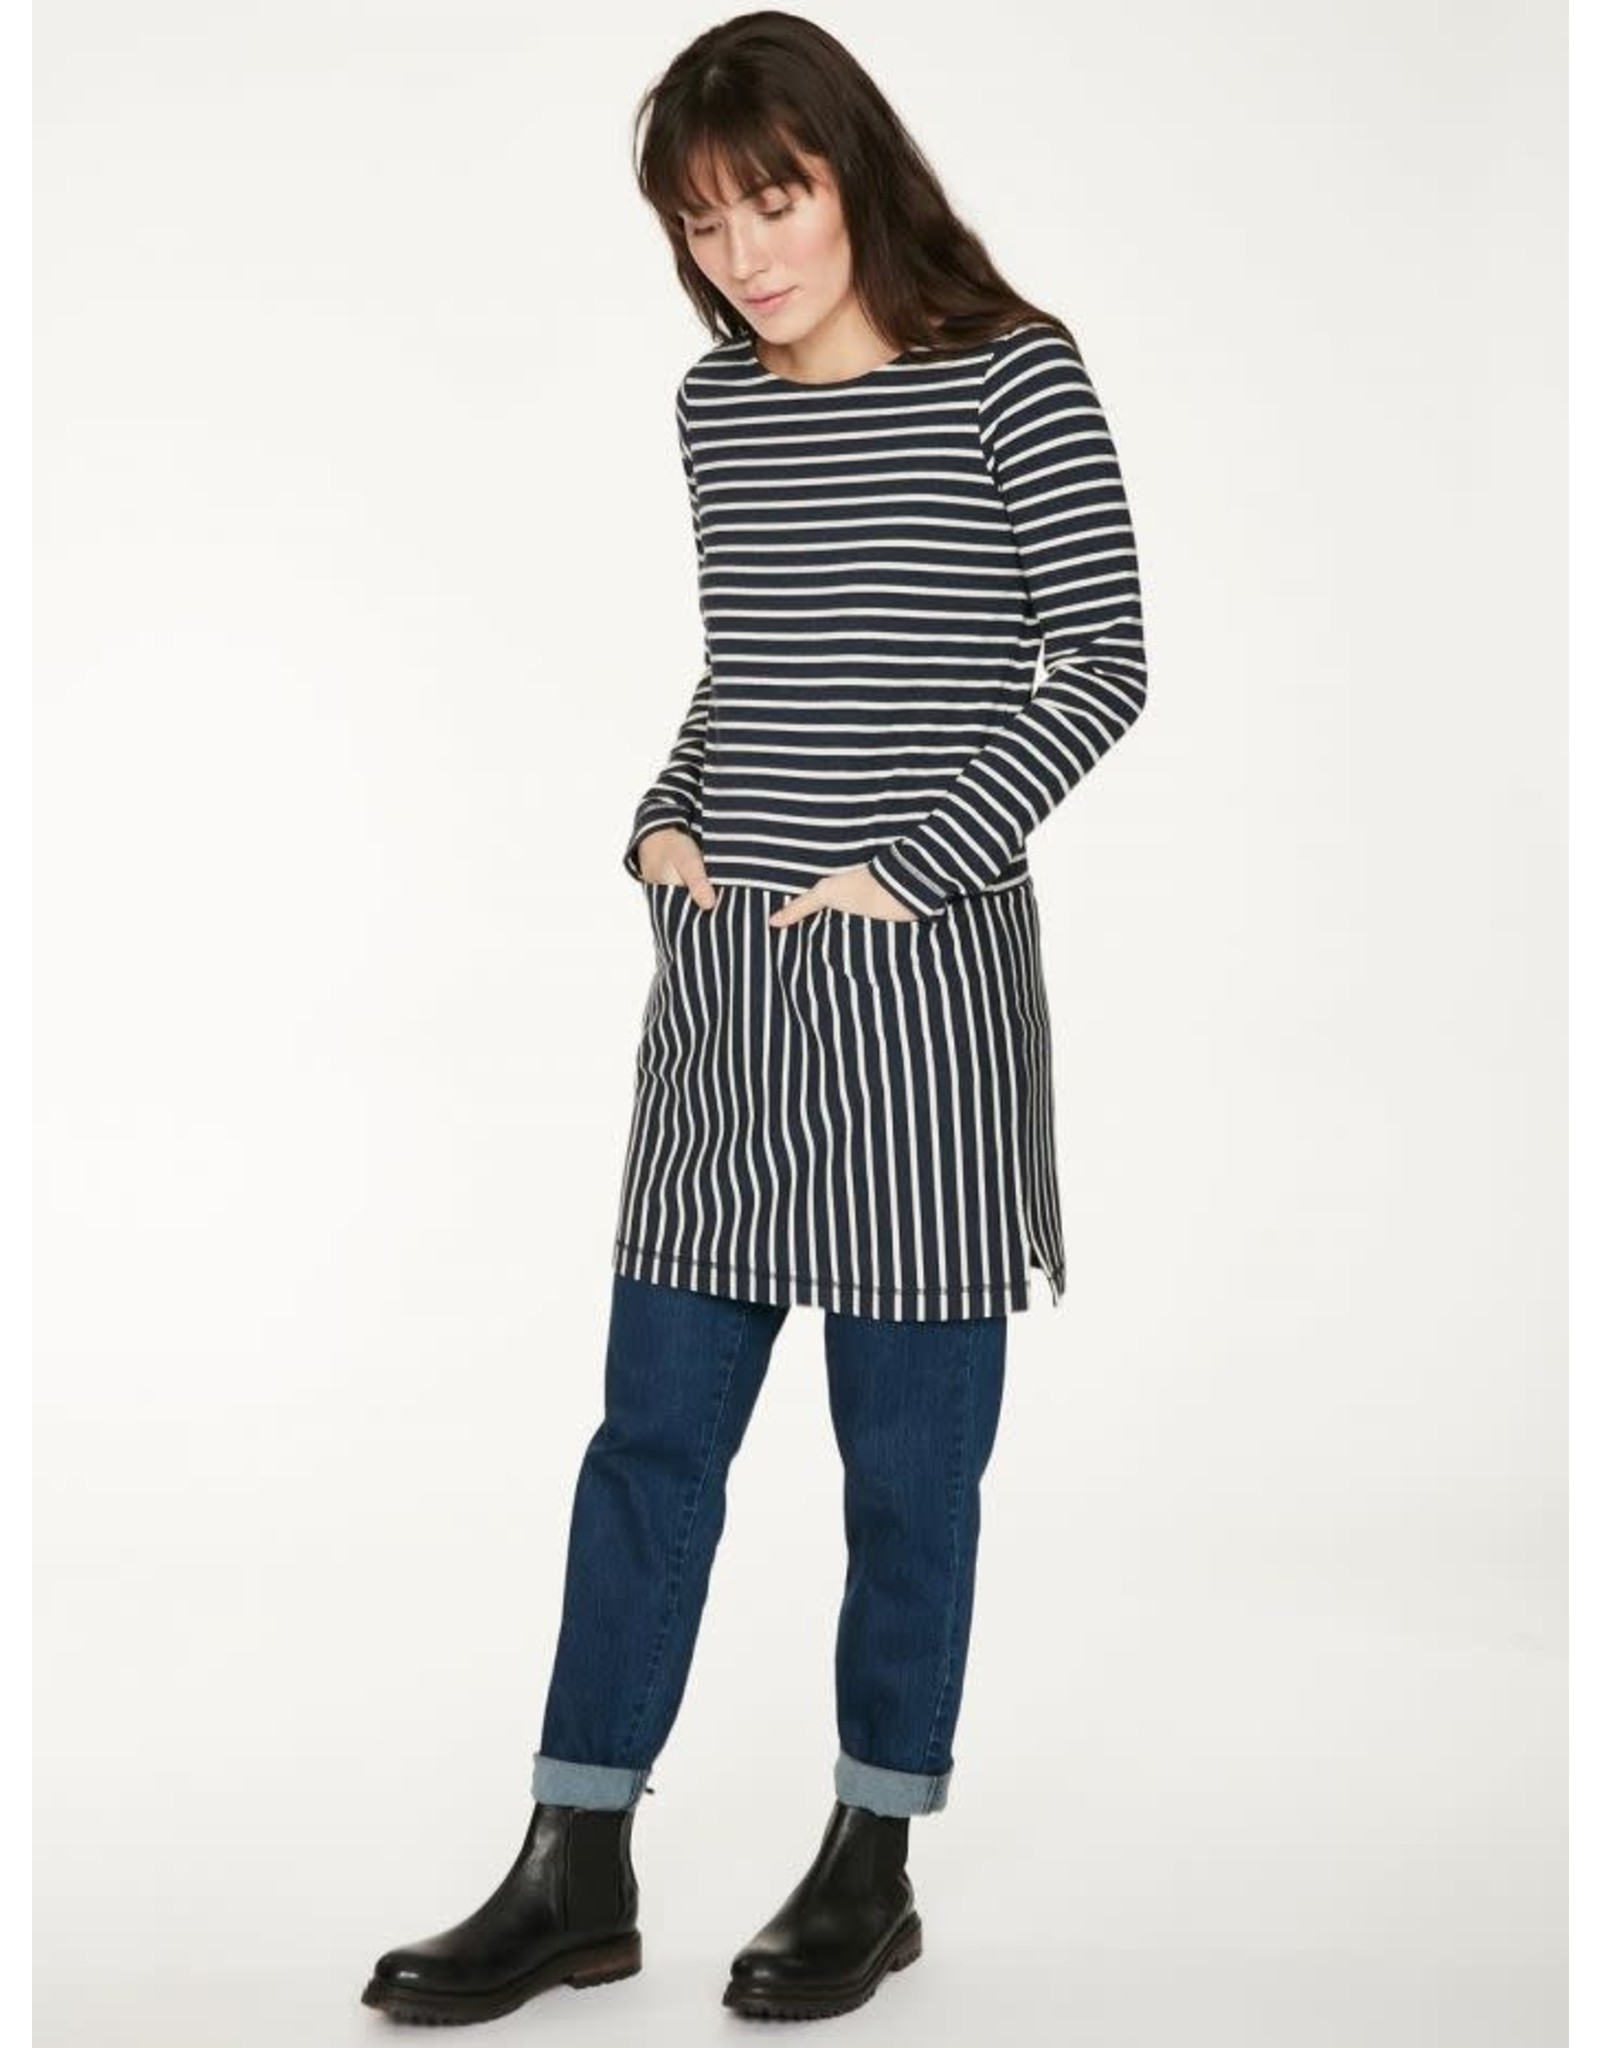 Thought Thought Hester Dress